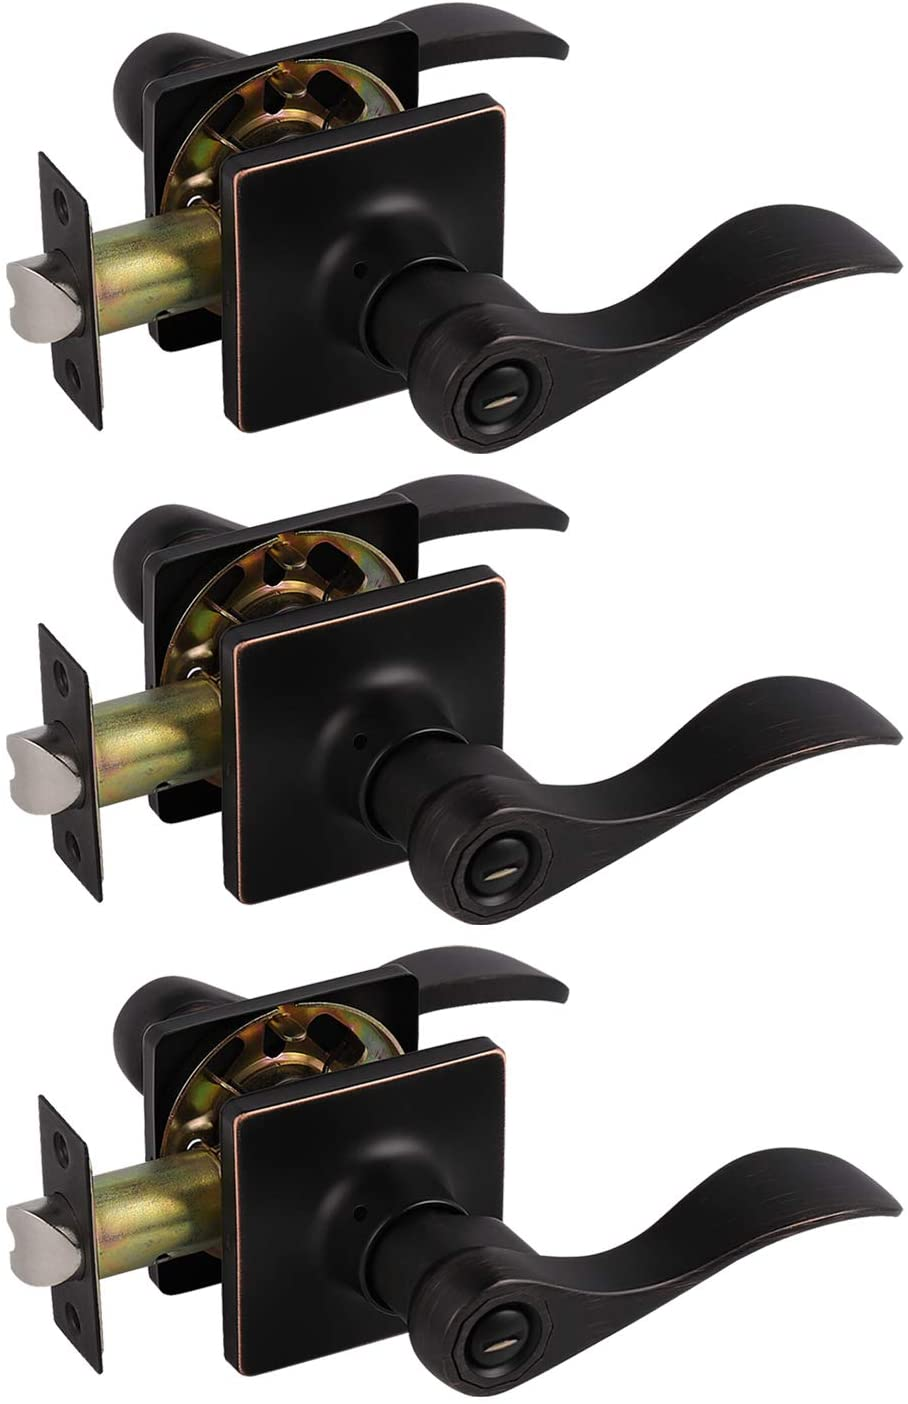 Probrico Universal Wave Style Levers Door Handles Privacy Locks for Bedroom and Bath, Reversible Right/Left Handing Keyless Oil Rubbed Bronze Hardware with Square Rosette, 3 Pack